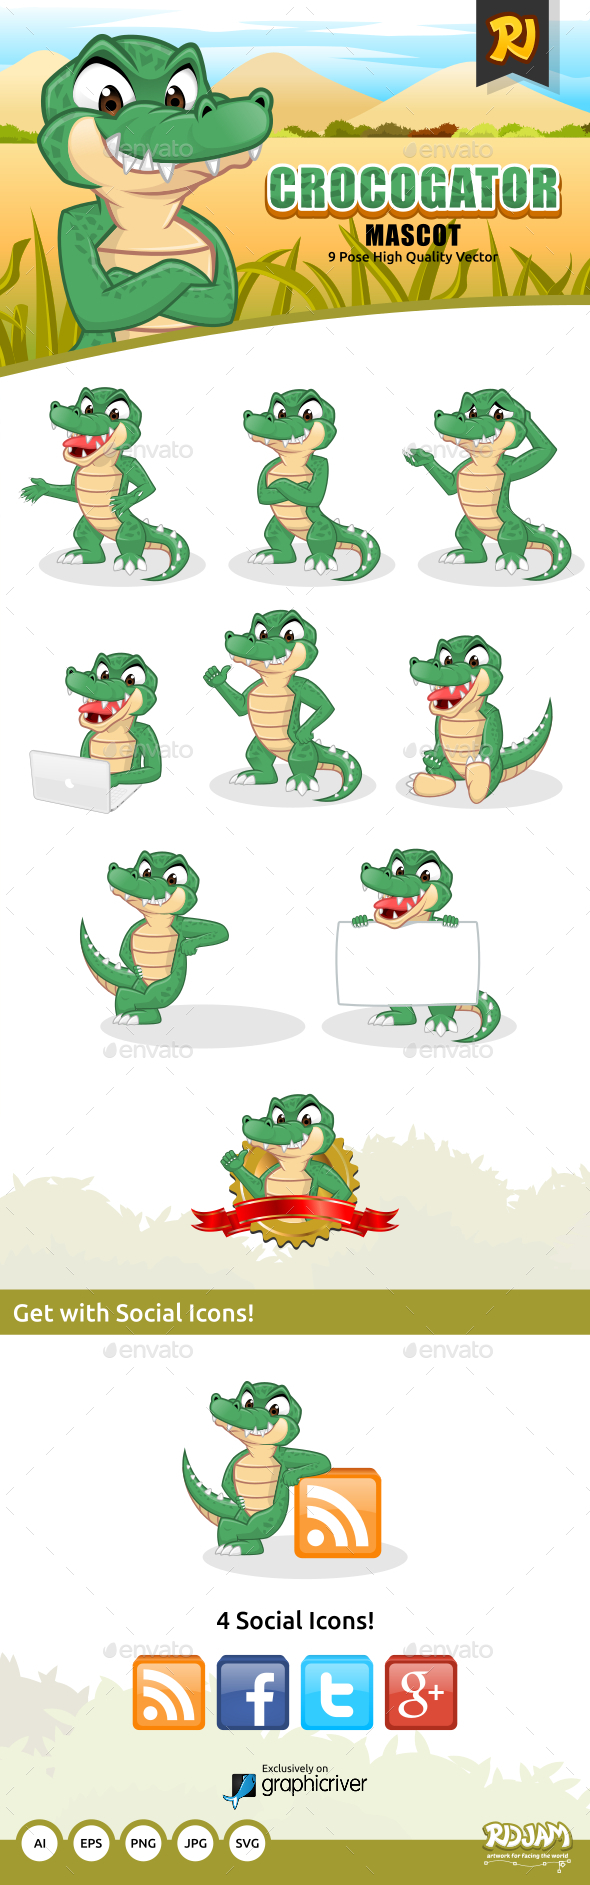 GraphicRiver Crocogator Mascot 10437449